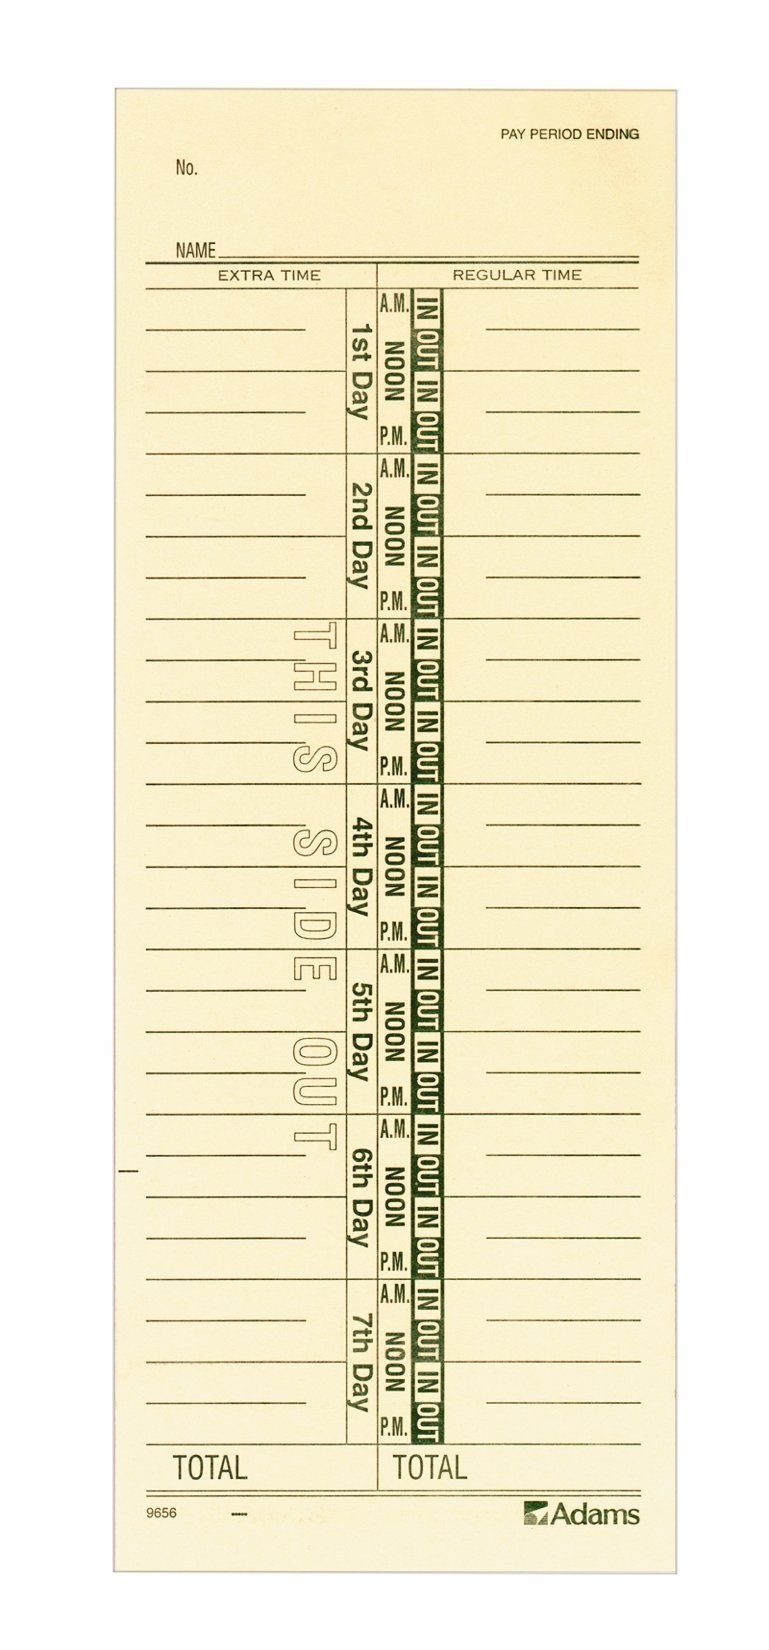 Adams Time Cards, Weekly, 1-Sided, Numbered Days, 3-3/8'' x 9'', Manila, Green Print, 200-Count (9656-200) by Adams